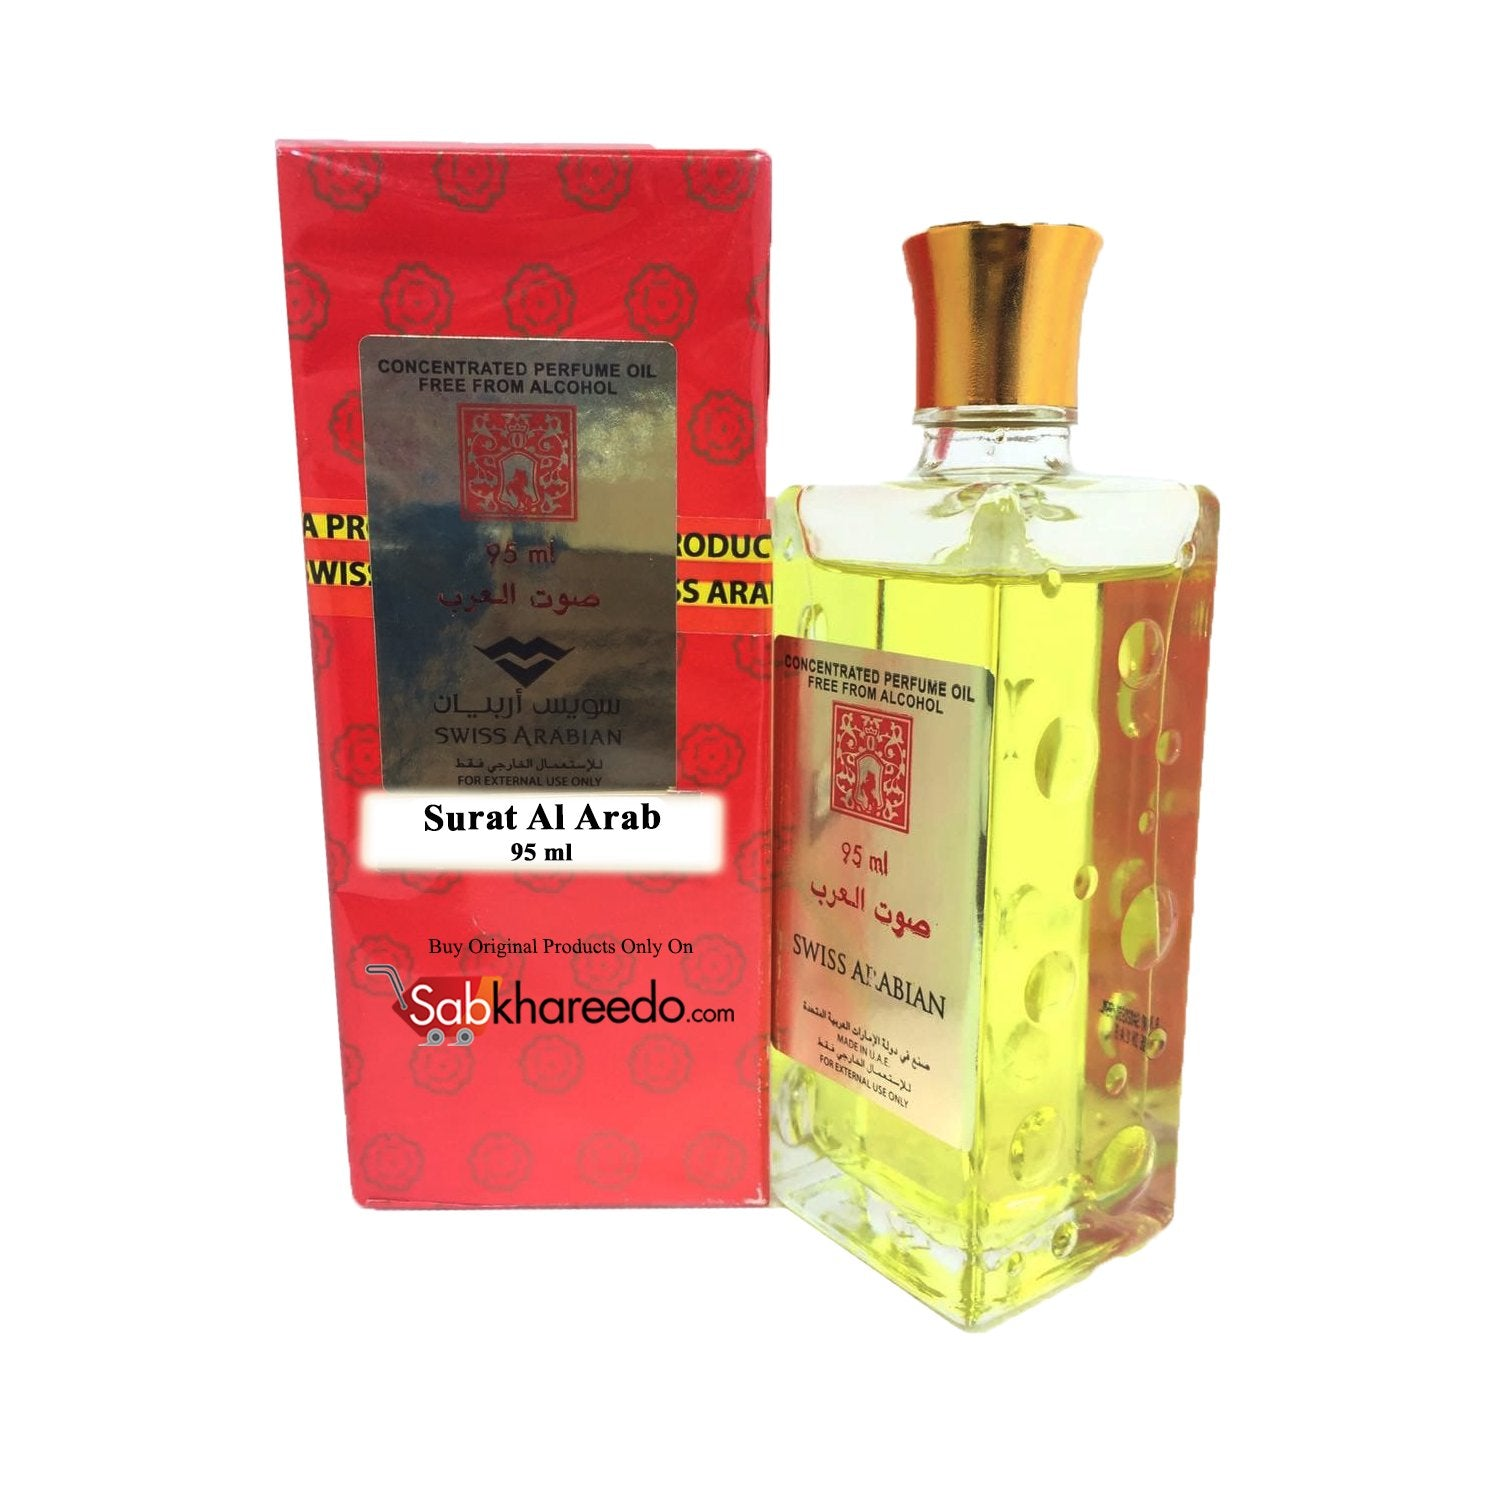 Swiss Arabian Surat Al Arab Attar - 95ml